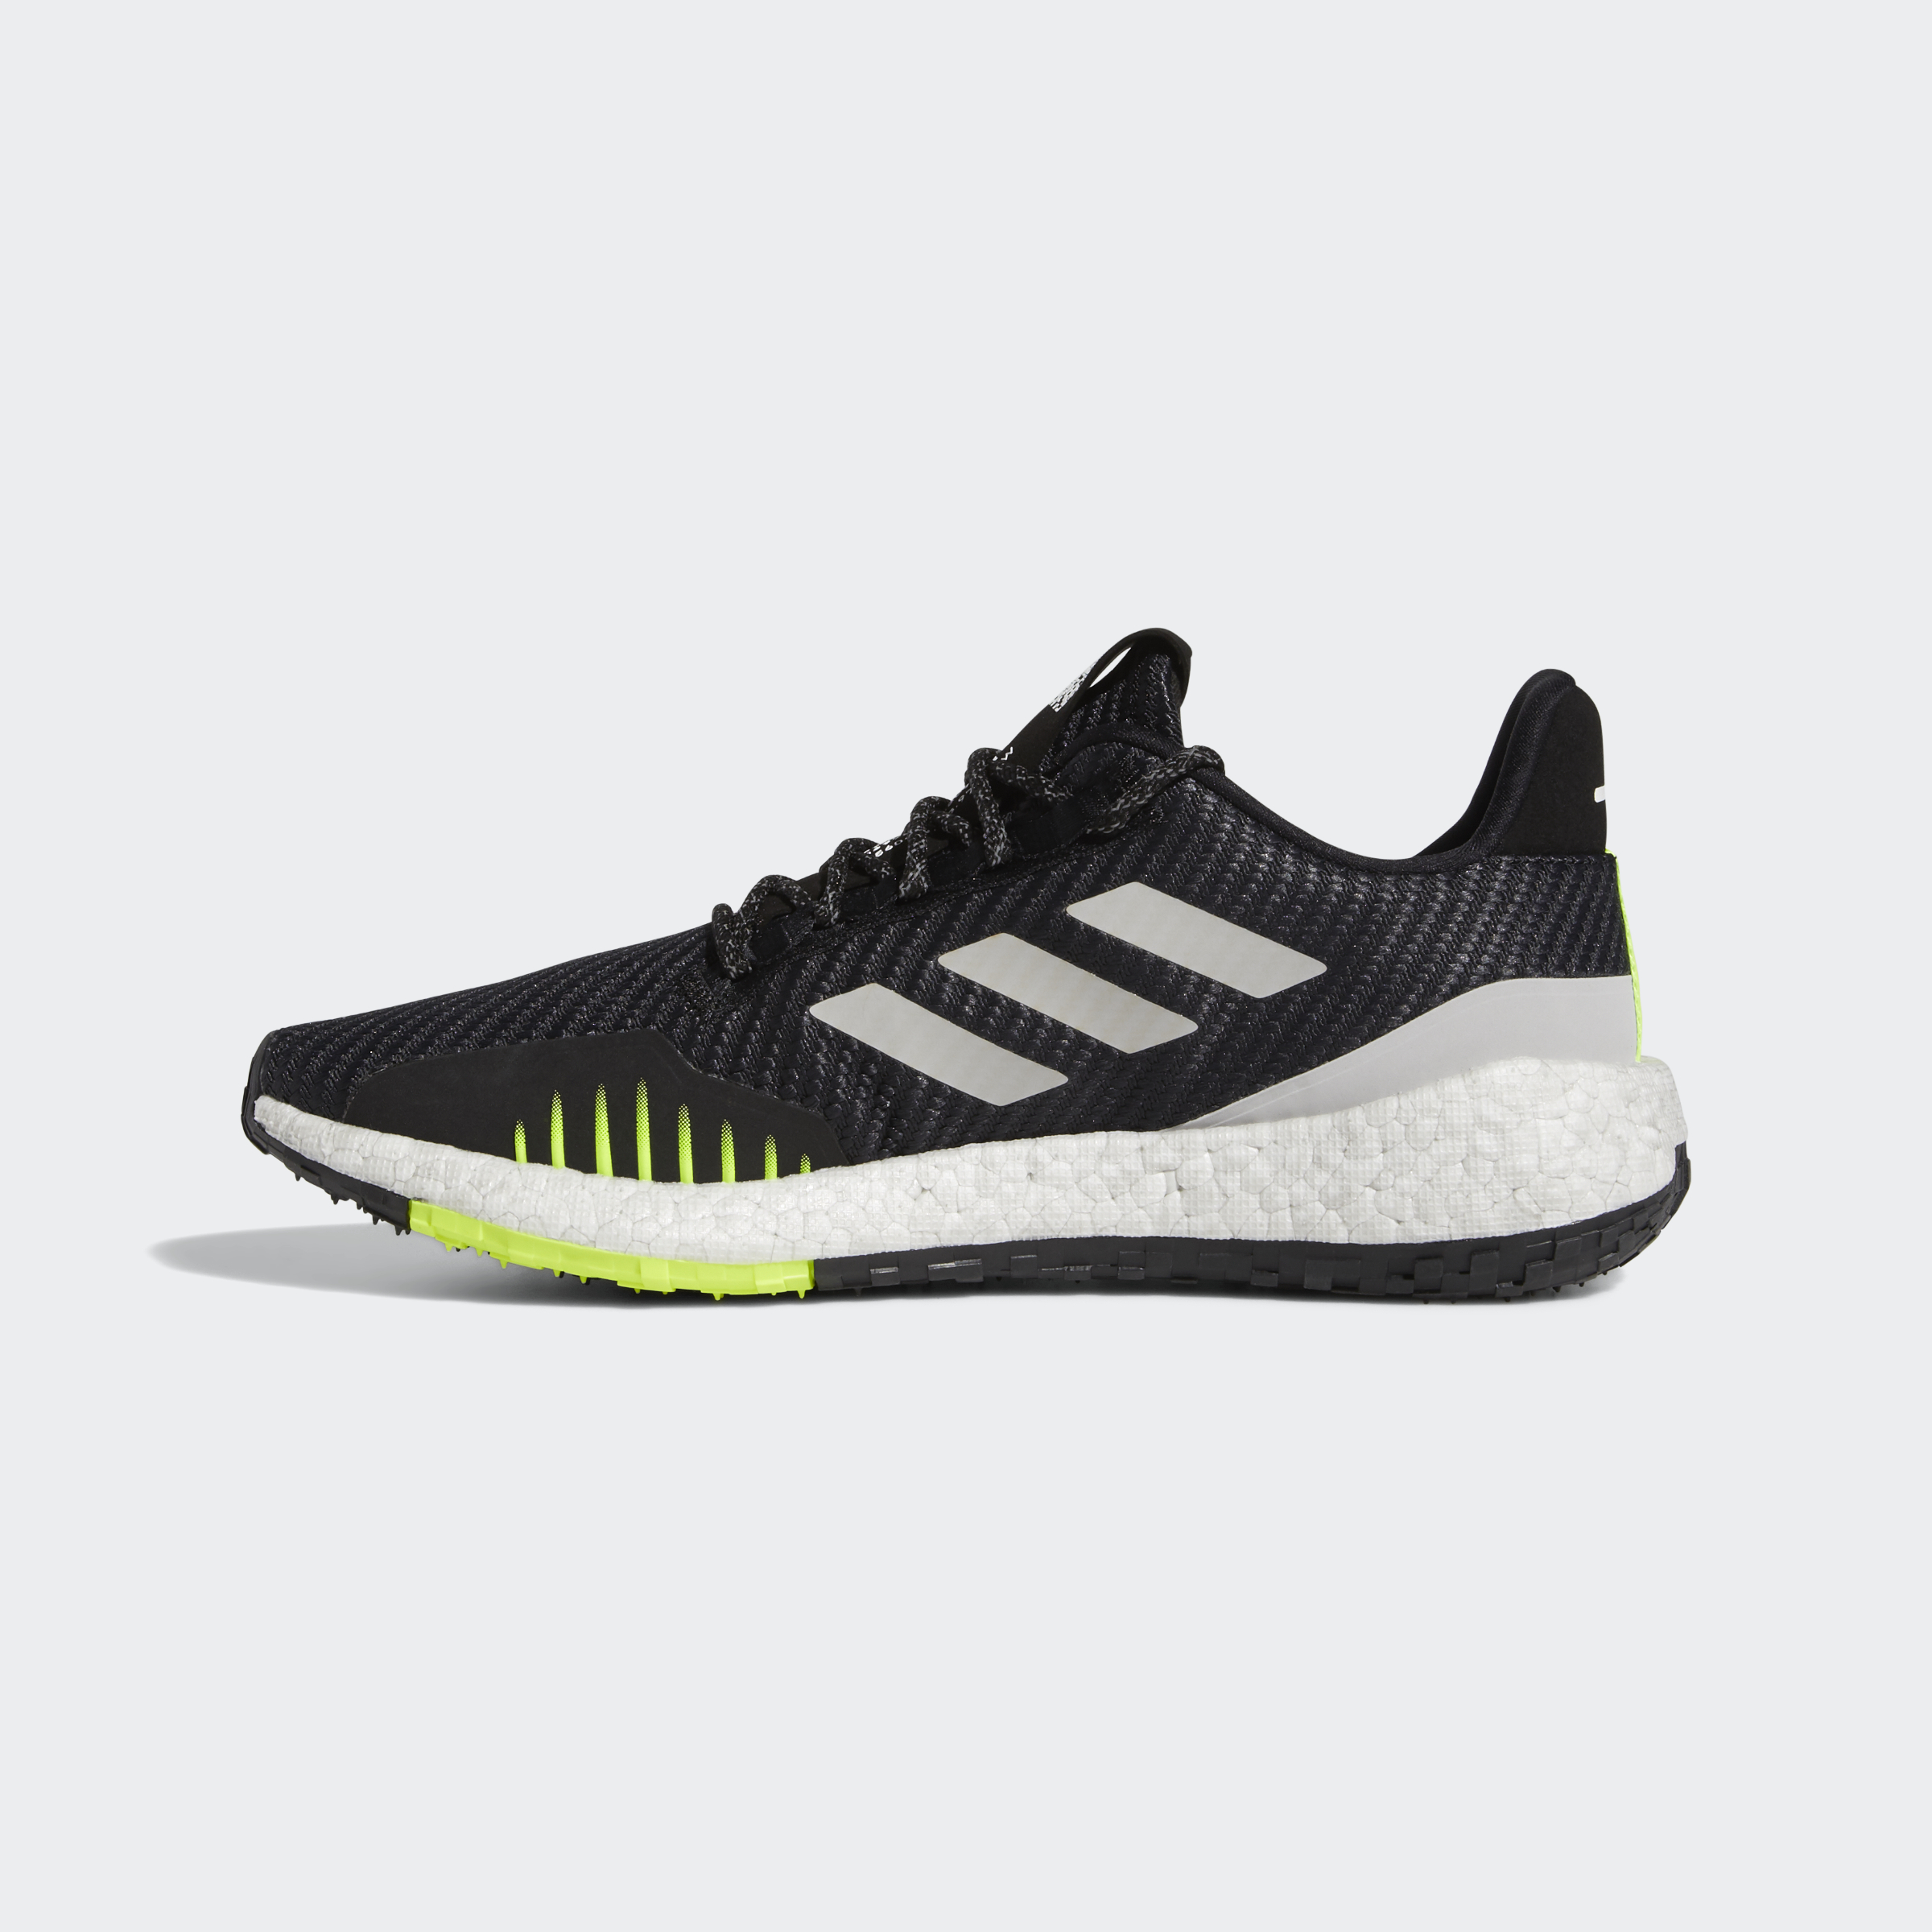 miniature 17 - adidas Pulseboost HD Winter Shoes  Athletic & Sneakers